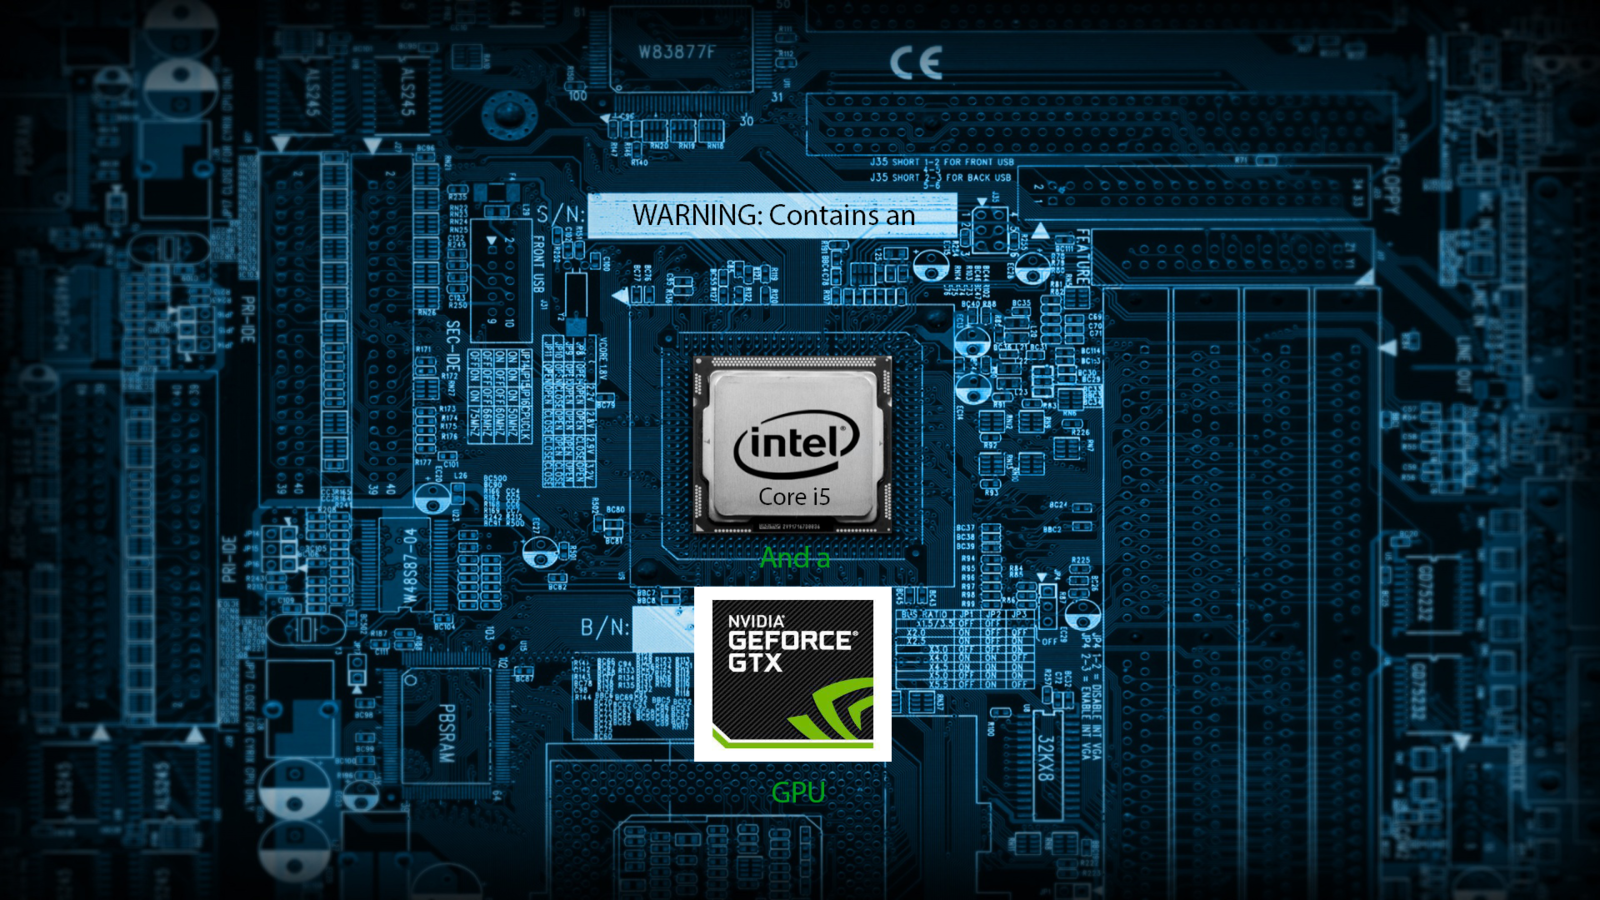 Intel NVIDIA Wallpaper